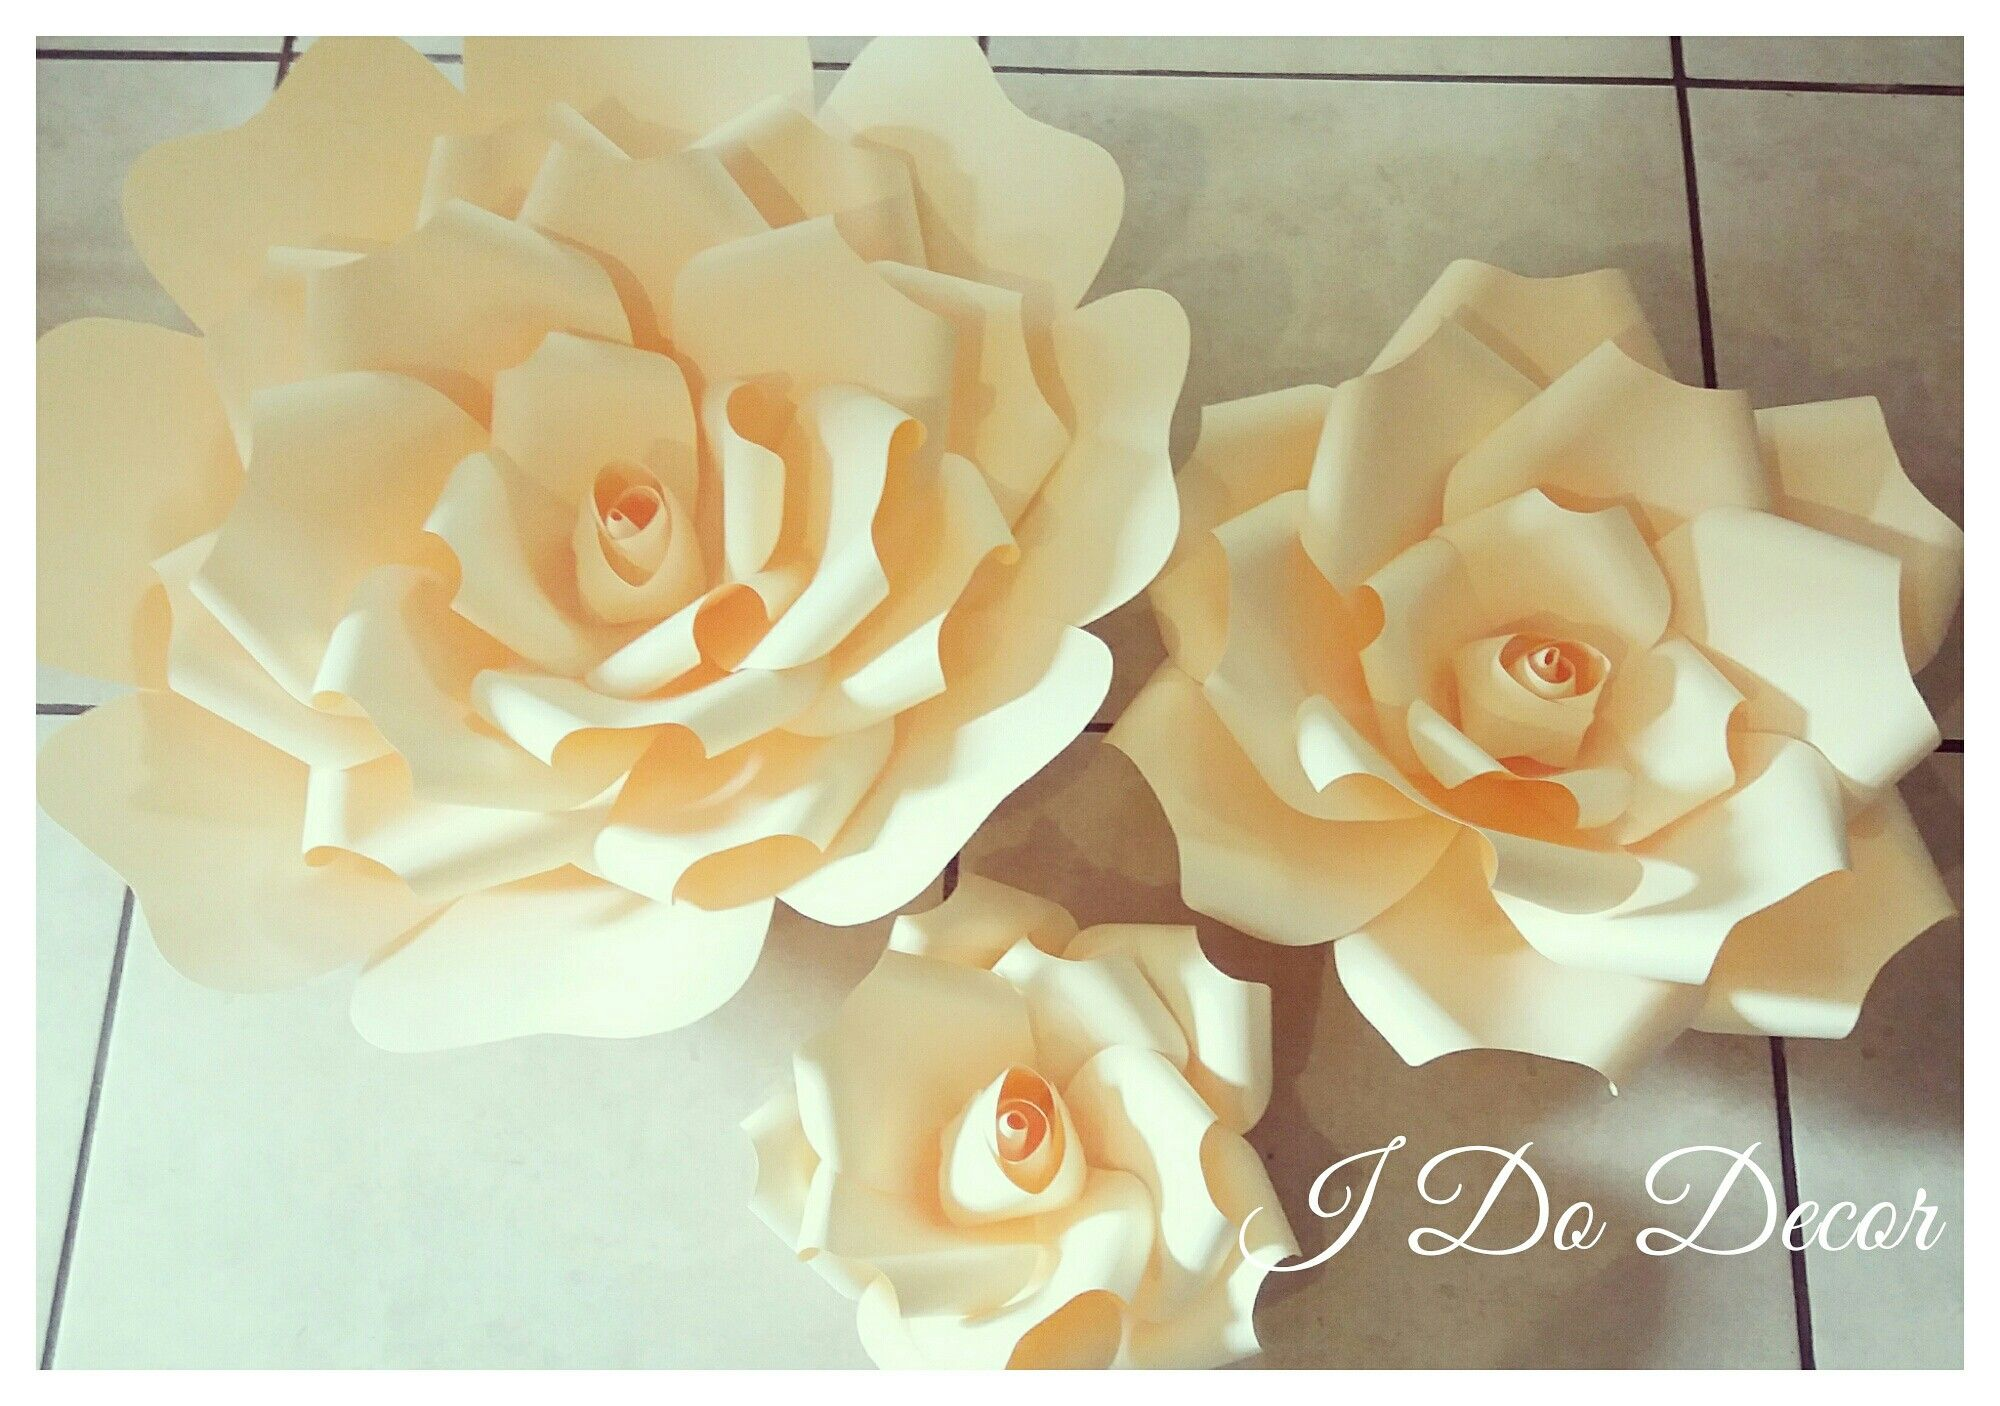 Home Decor, paper flower wall decal set | Paper Flowers made by I Do ...